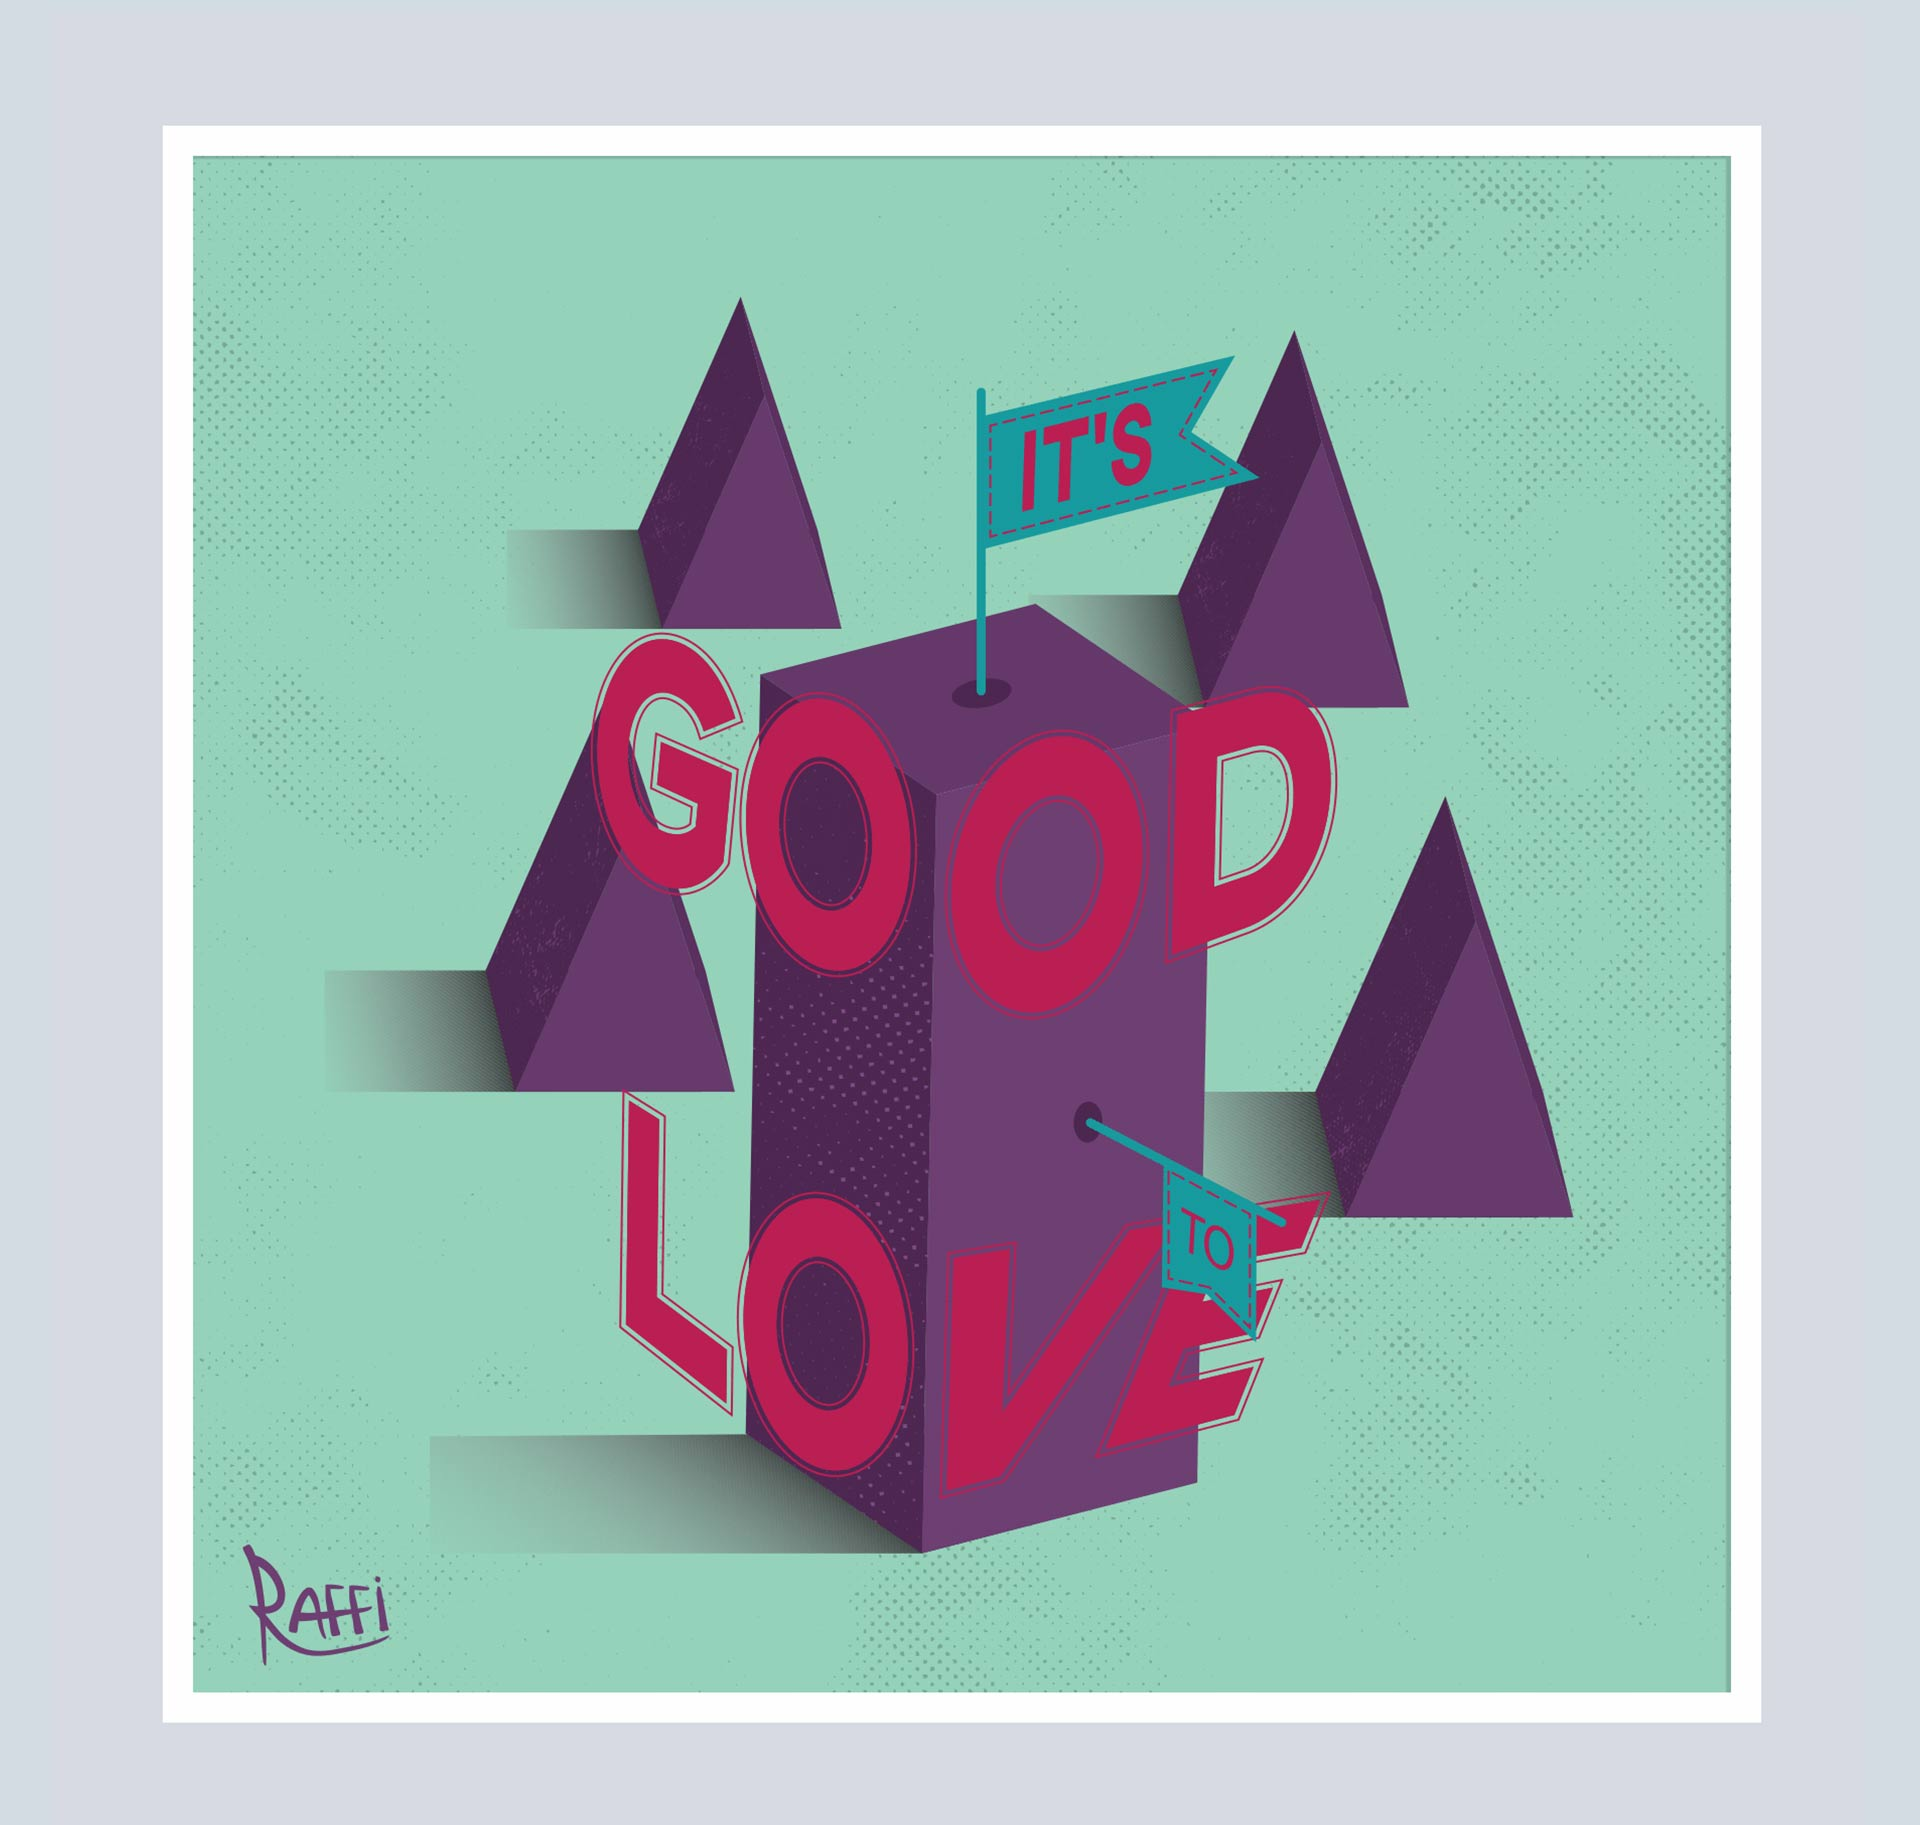 It's Good to Love illustration. It depicts a 3D typographic piece with geometric shapes.